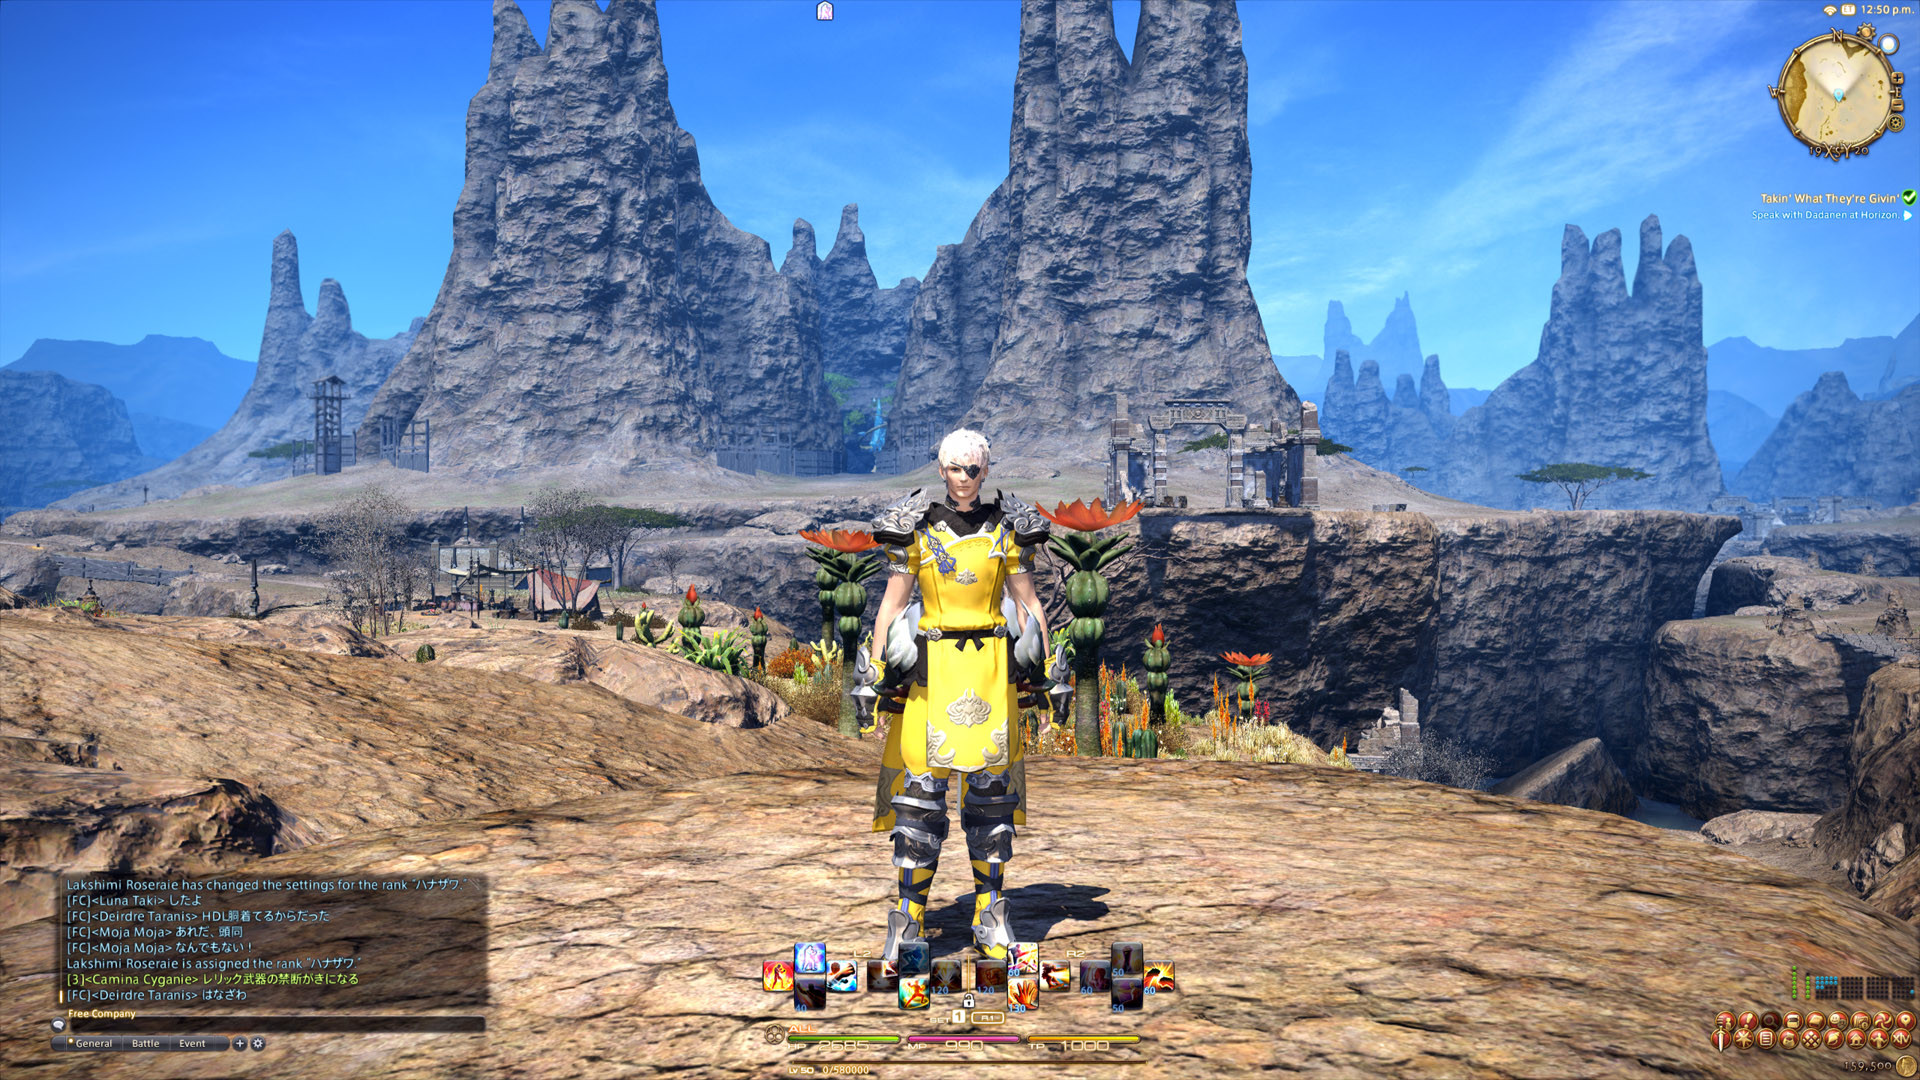 FFXIV: ARR at 1440p down-sampled to 1080p with 4x SGSSAA looks like this: